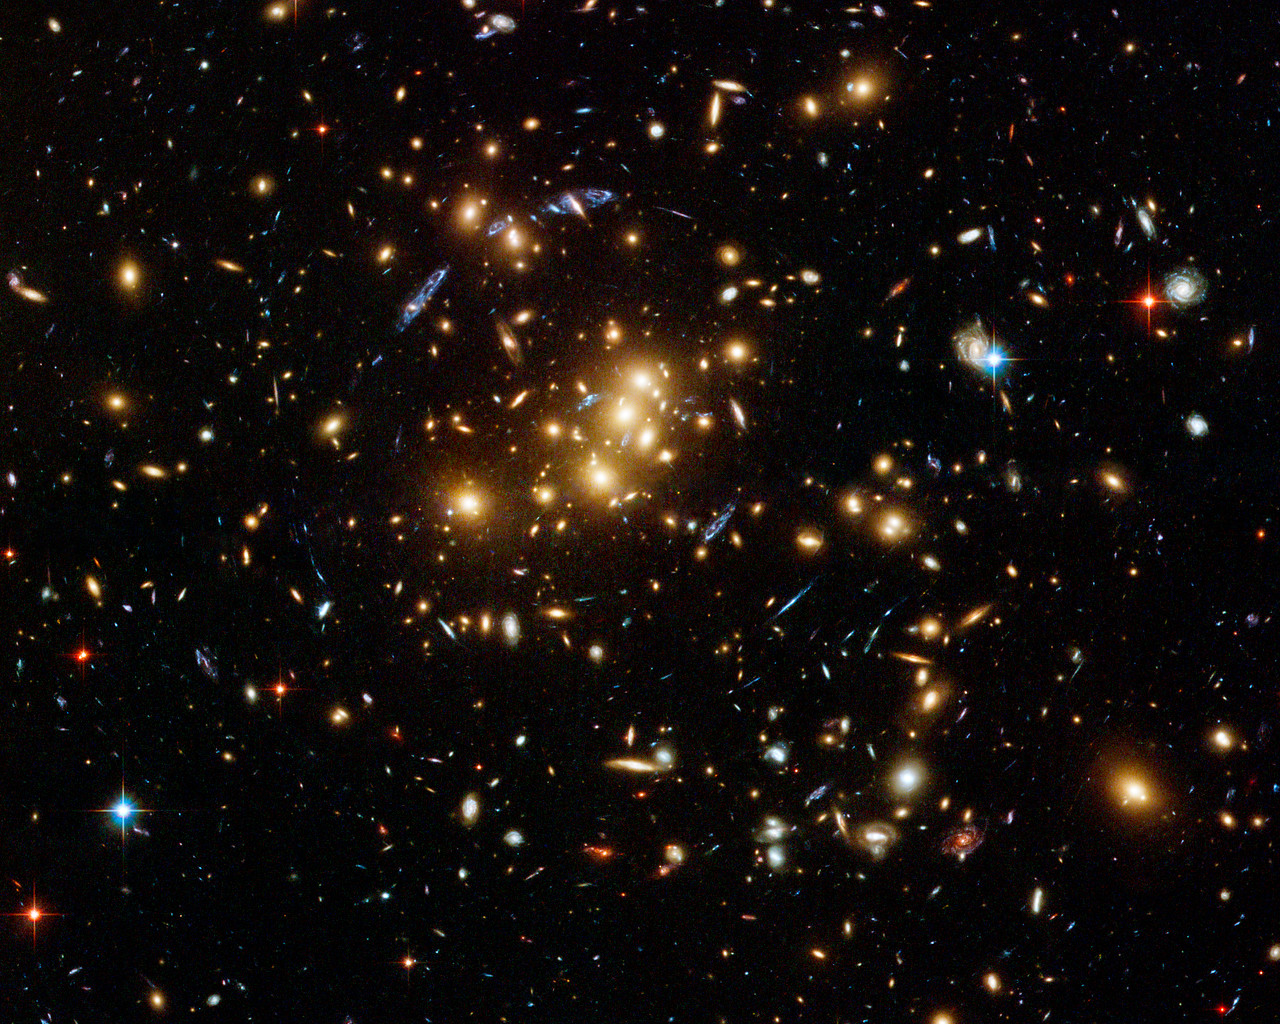 hubble telescope images hd wallpaper pics about space